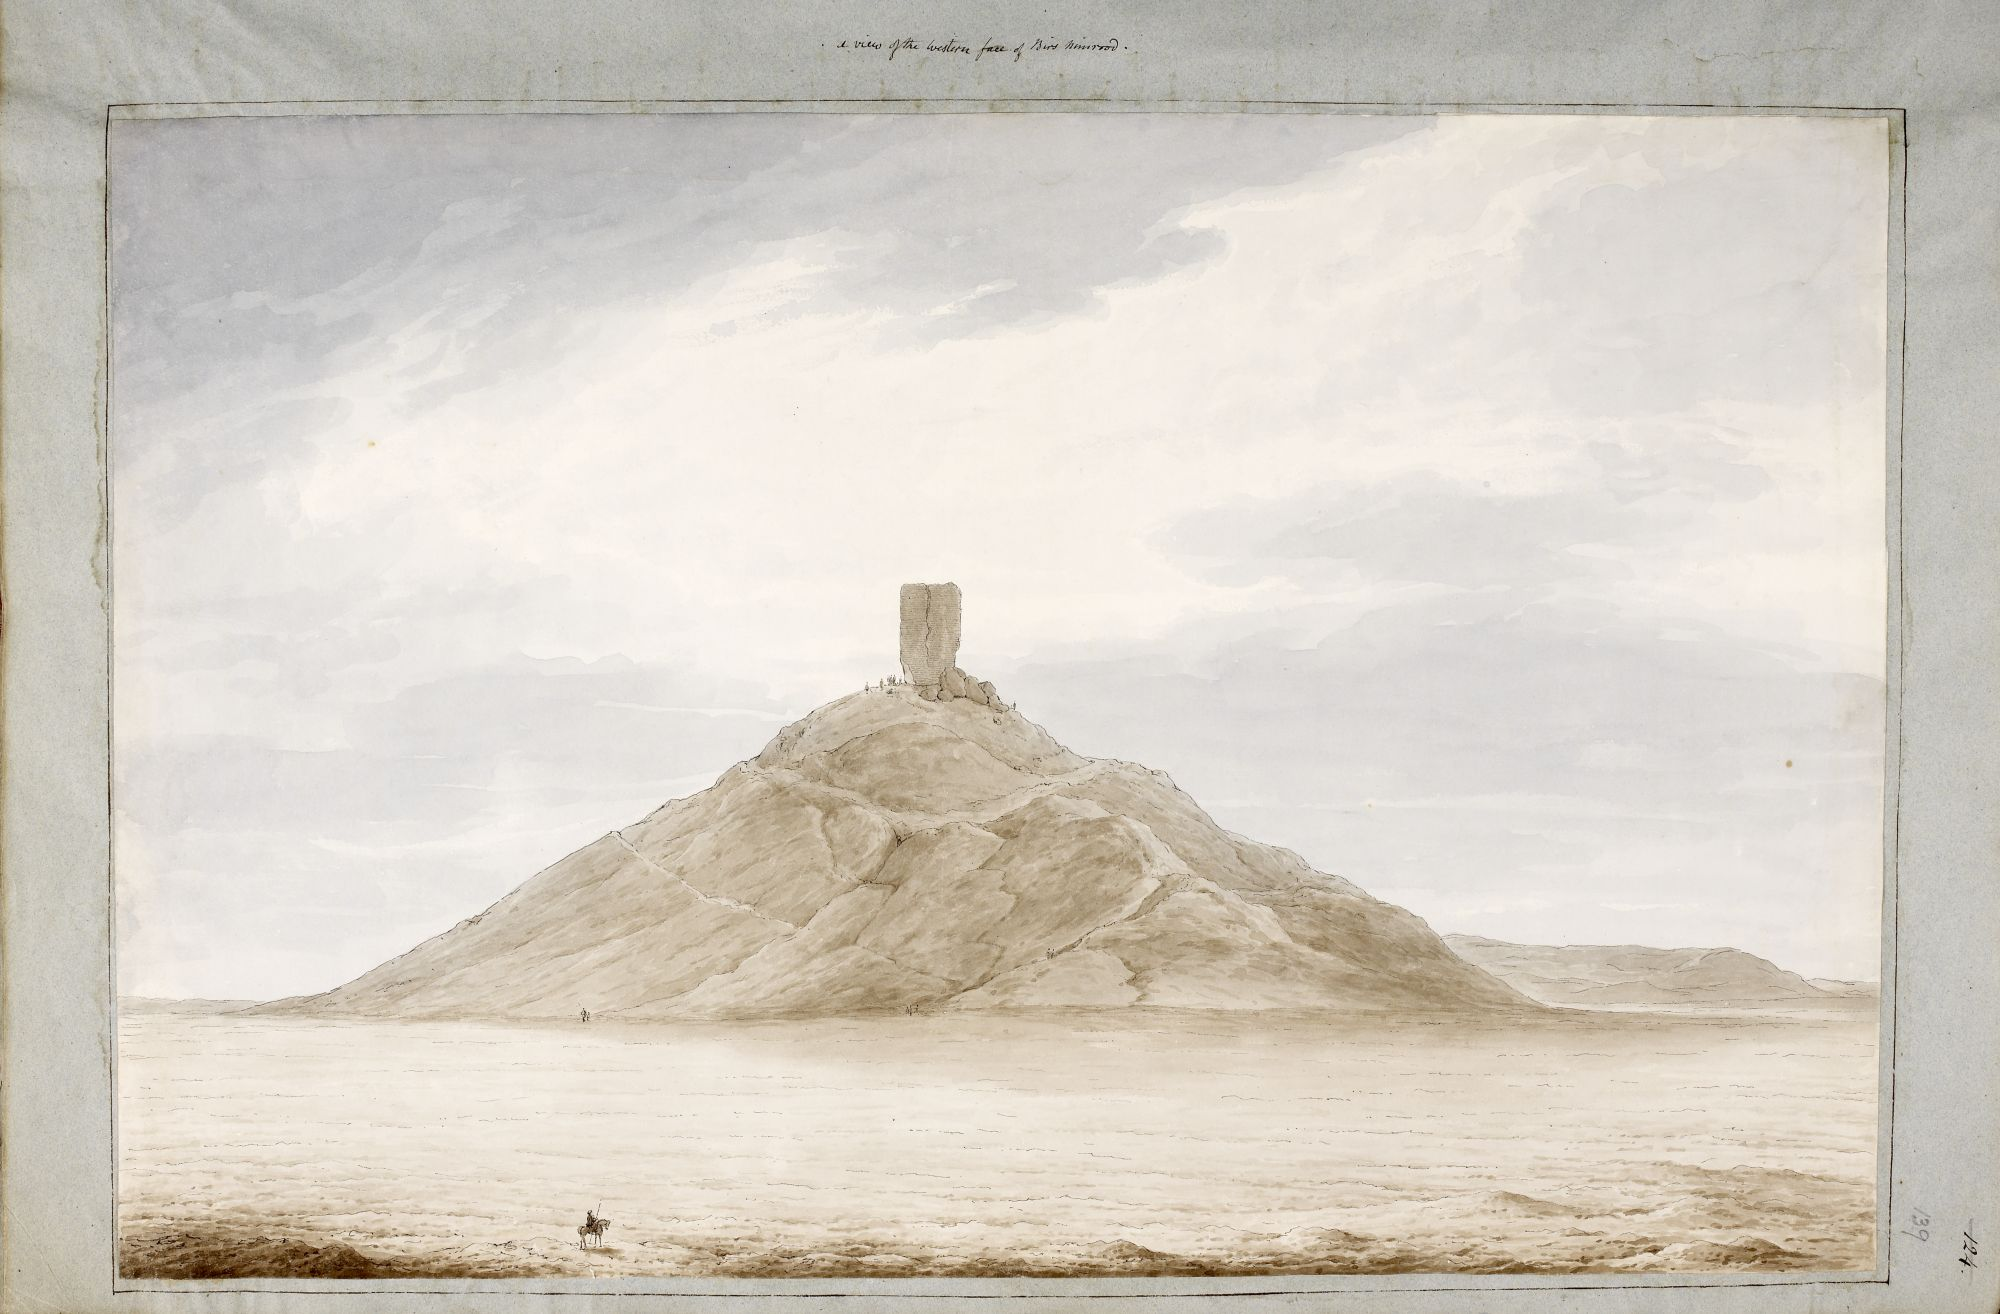 The West face of Birs Nimrood, by Sir Robert Ker Porter.